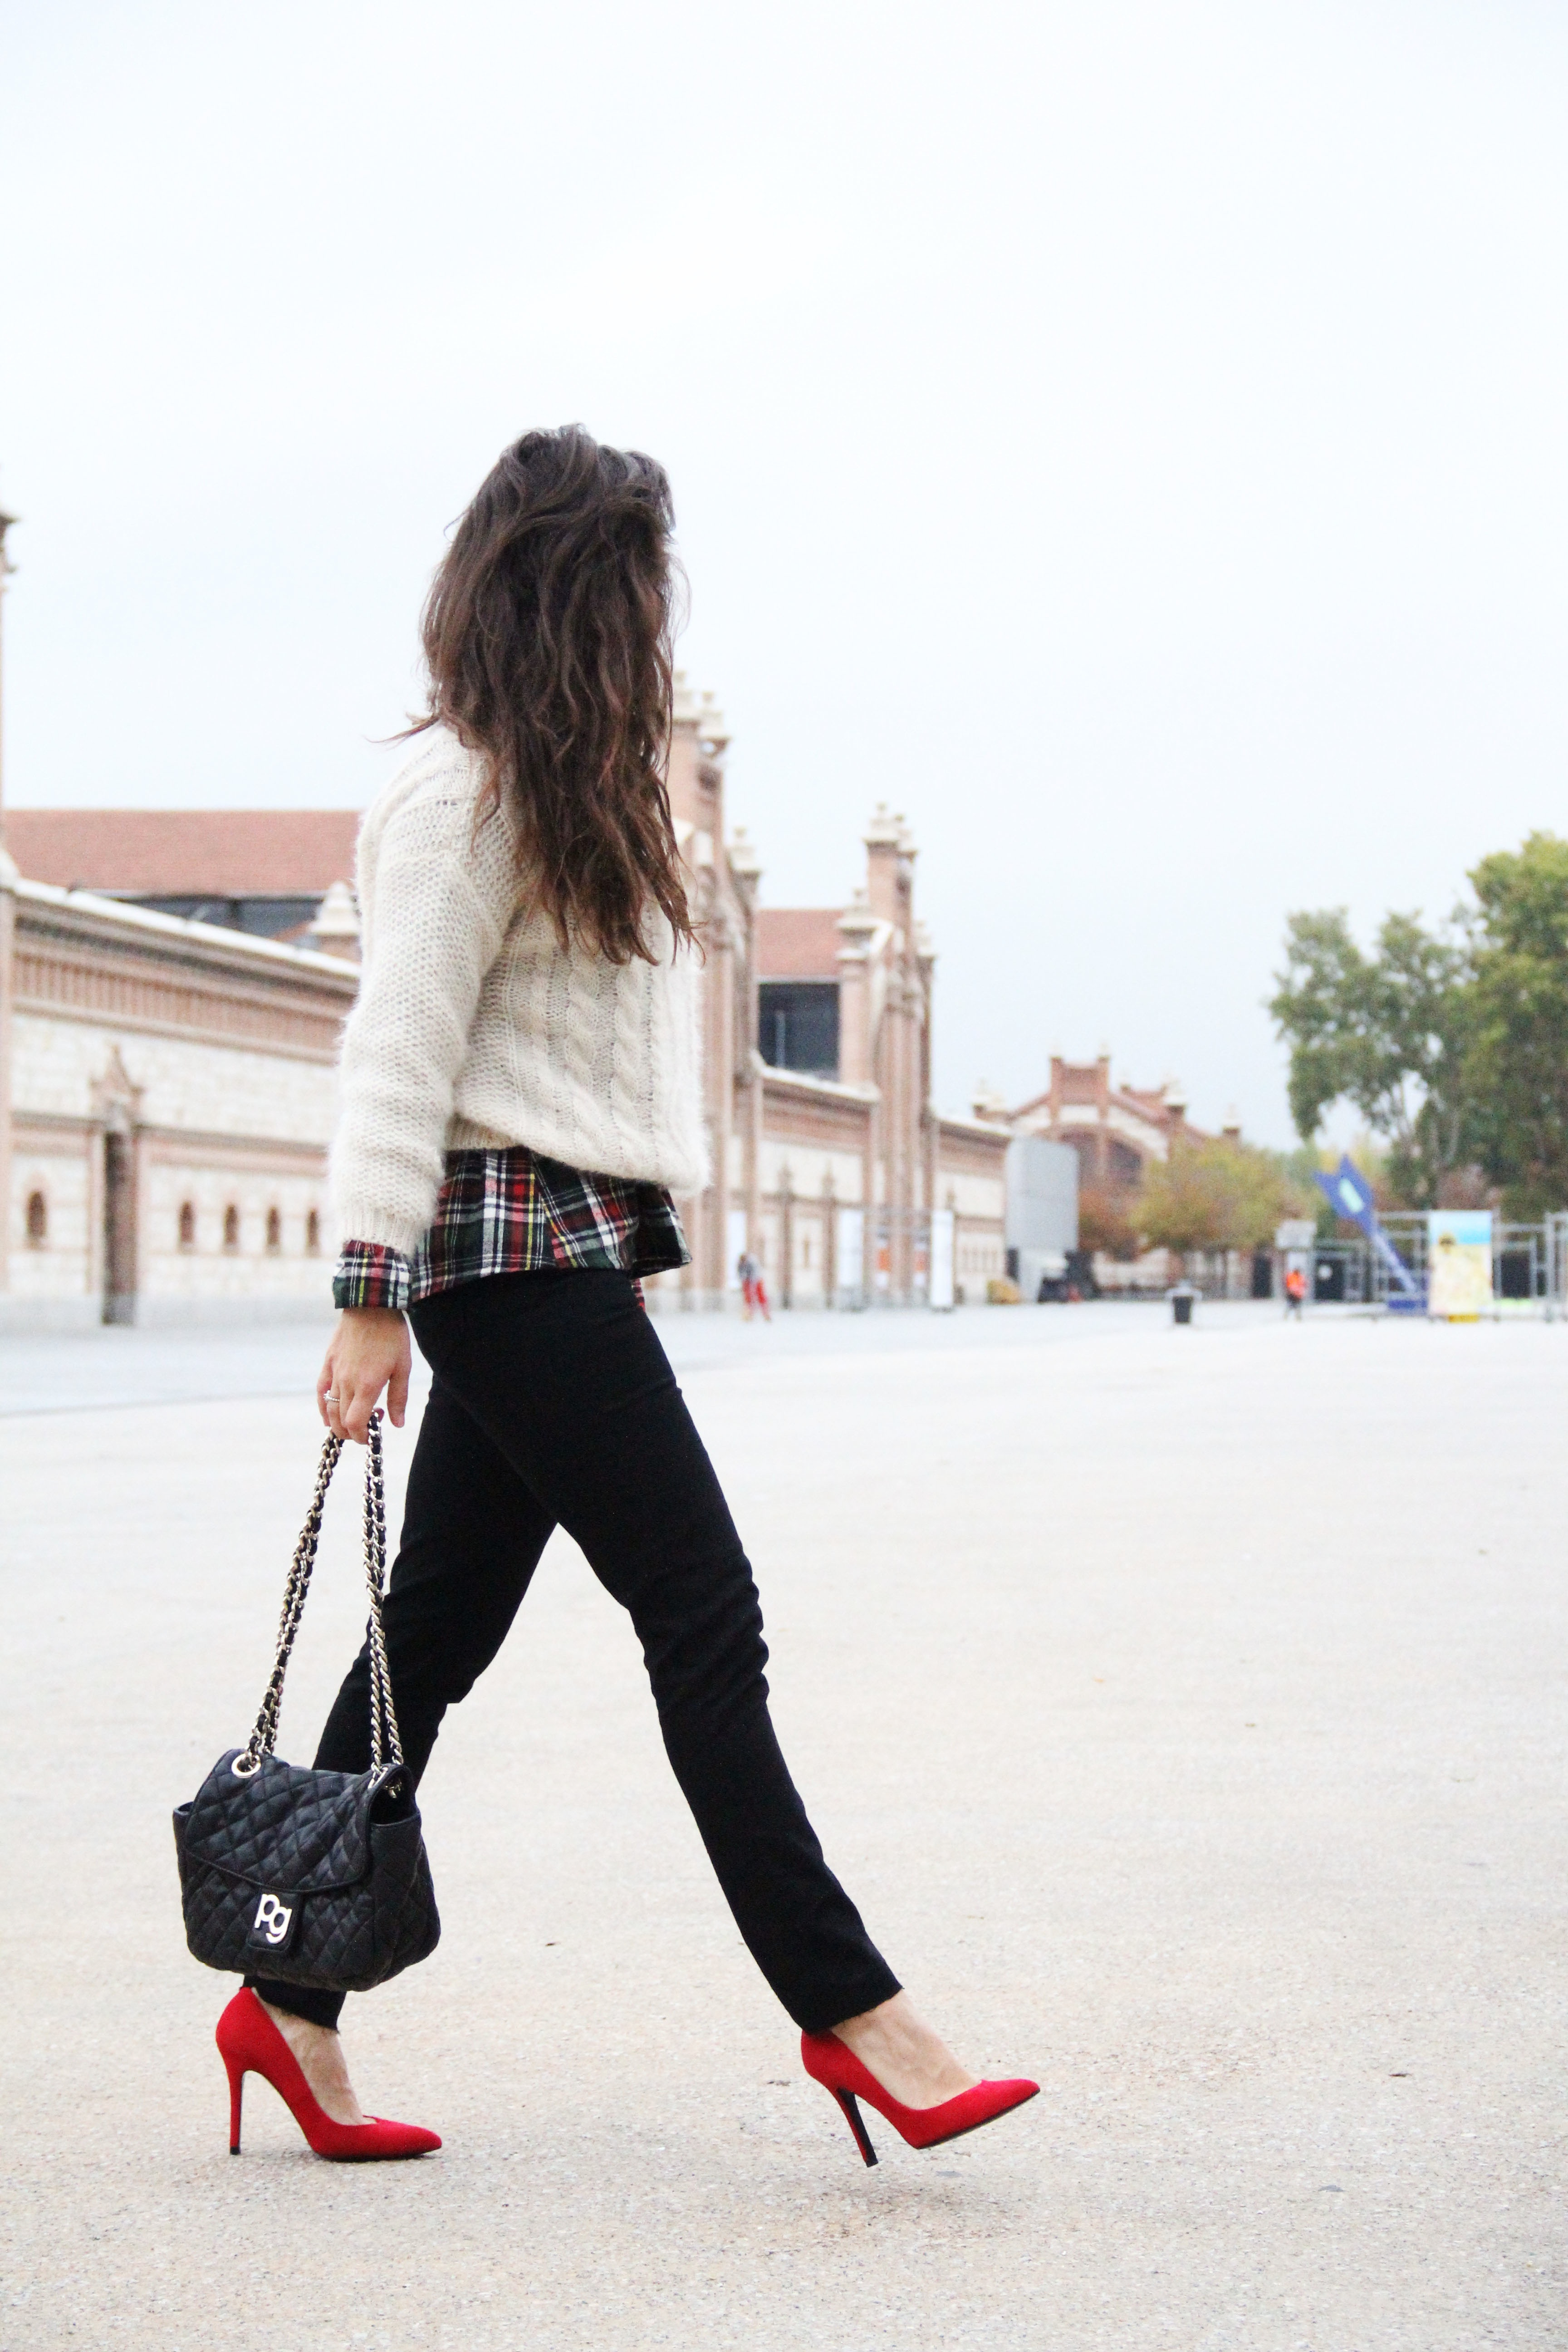 3_Less_is_more-black_jeans-compañía_fantástica-camisa_cuadros-salones_rojos-red_heels-outfit-street_style-bolso_purificacion_garcia-skinny_jeans